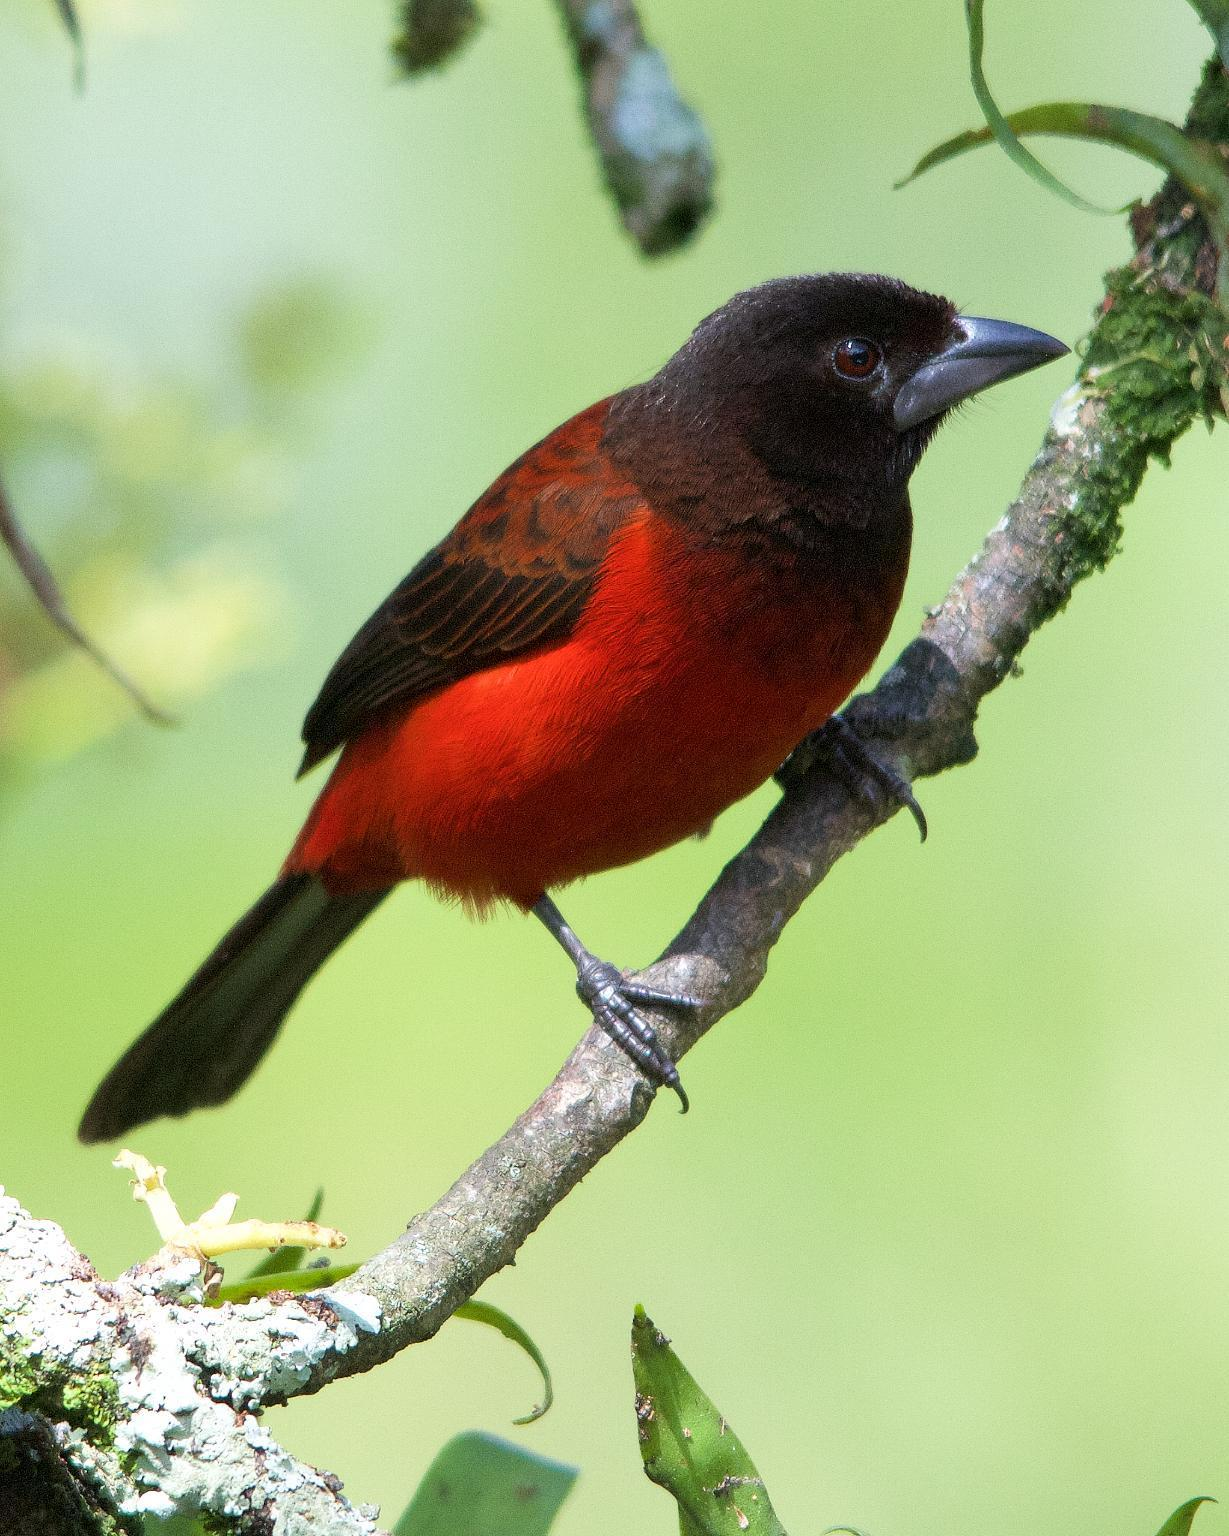 Crimson-backed Tanager Photo by Denis Rivard